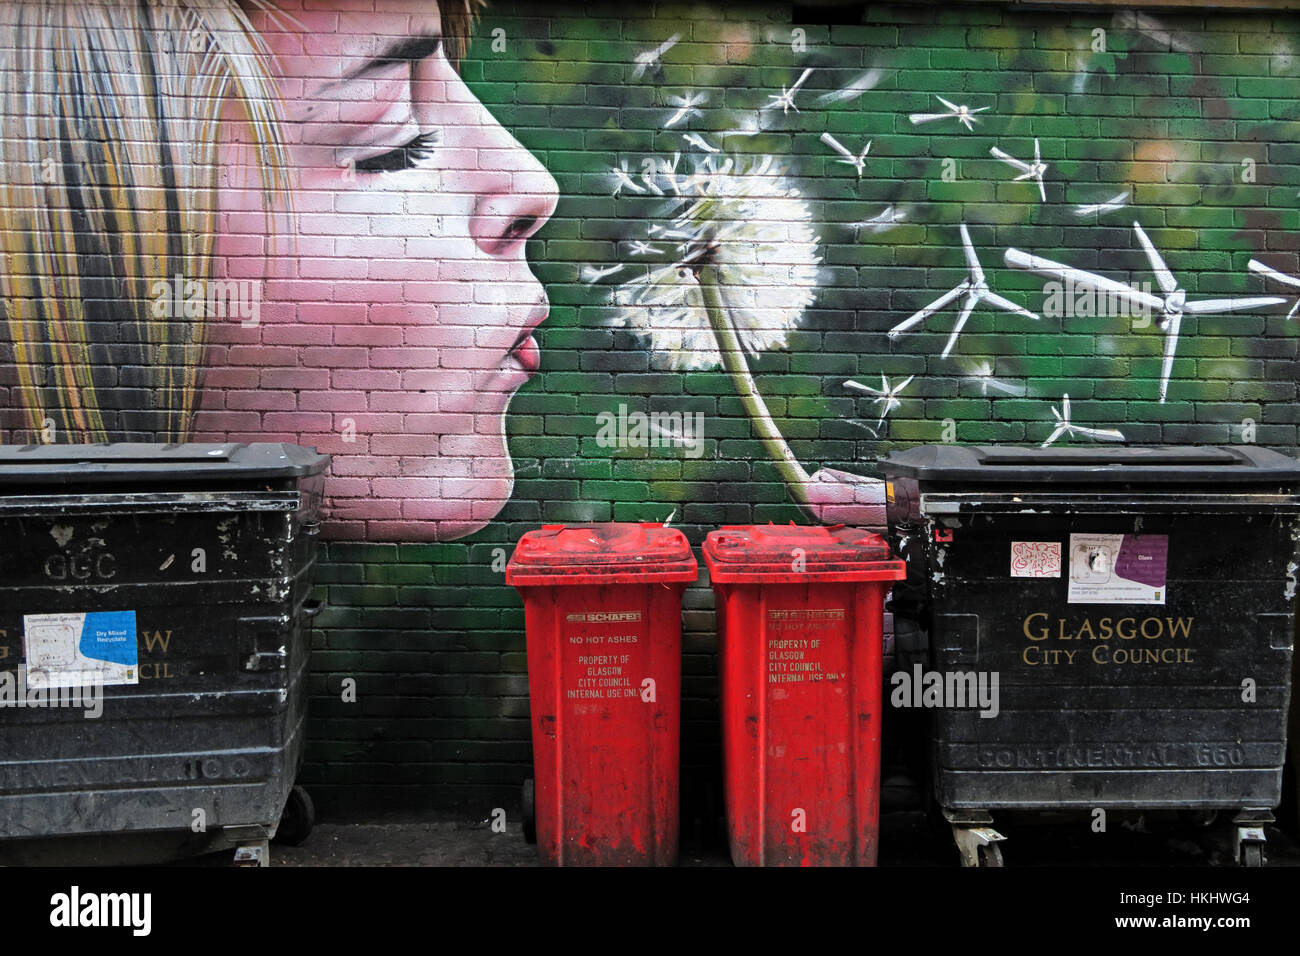 Girl blowing flower, Glasgow - Stock Image